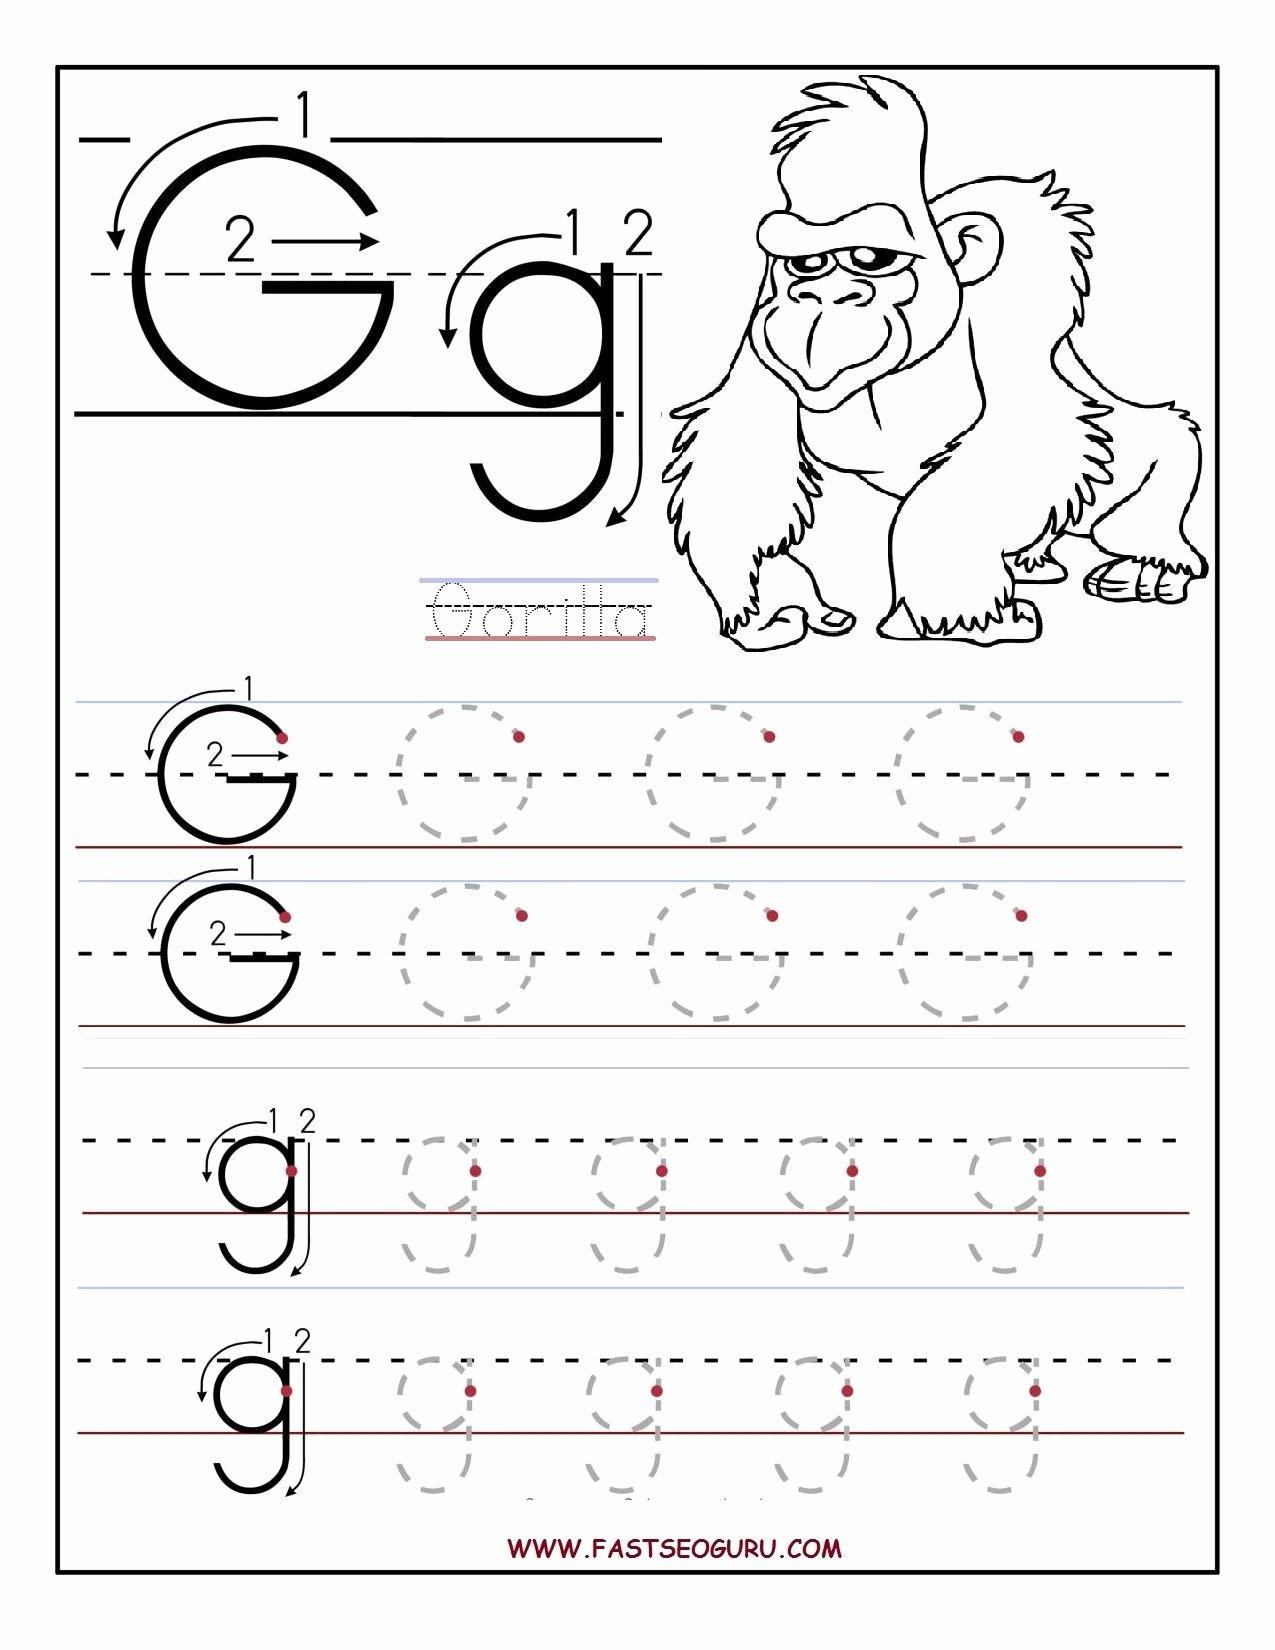 Worksheets for Preschoolers Tracing Letters Kids Printable Letter G Tracing Worksheets for Preschool